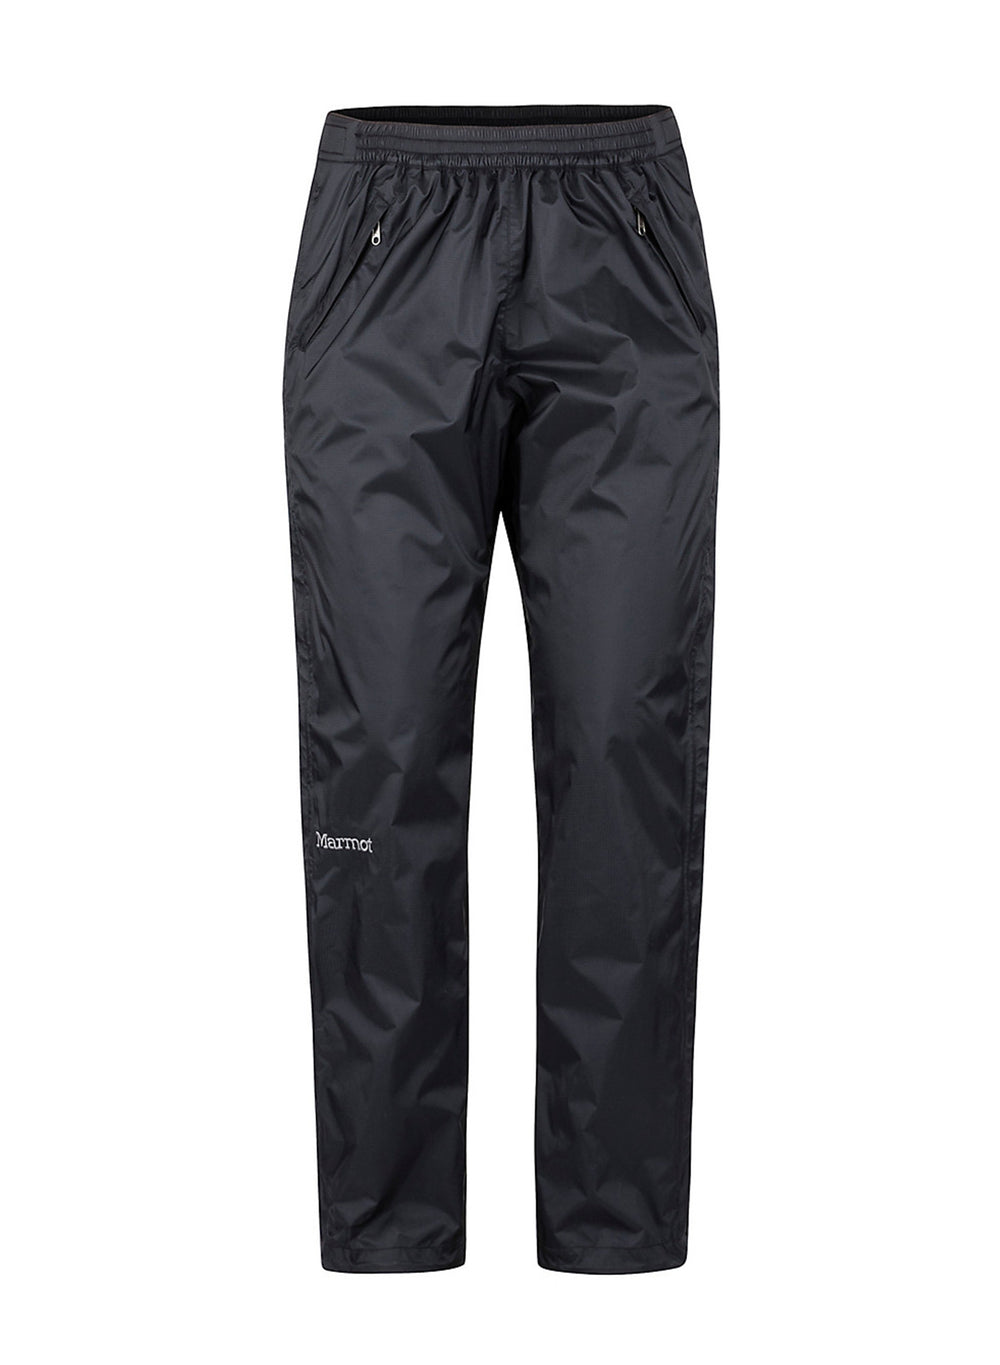 Marmot PreCip Eco Full Zip Pant - Women's